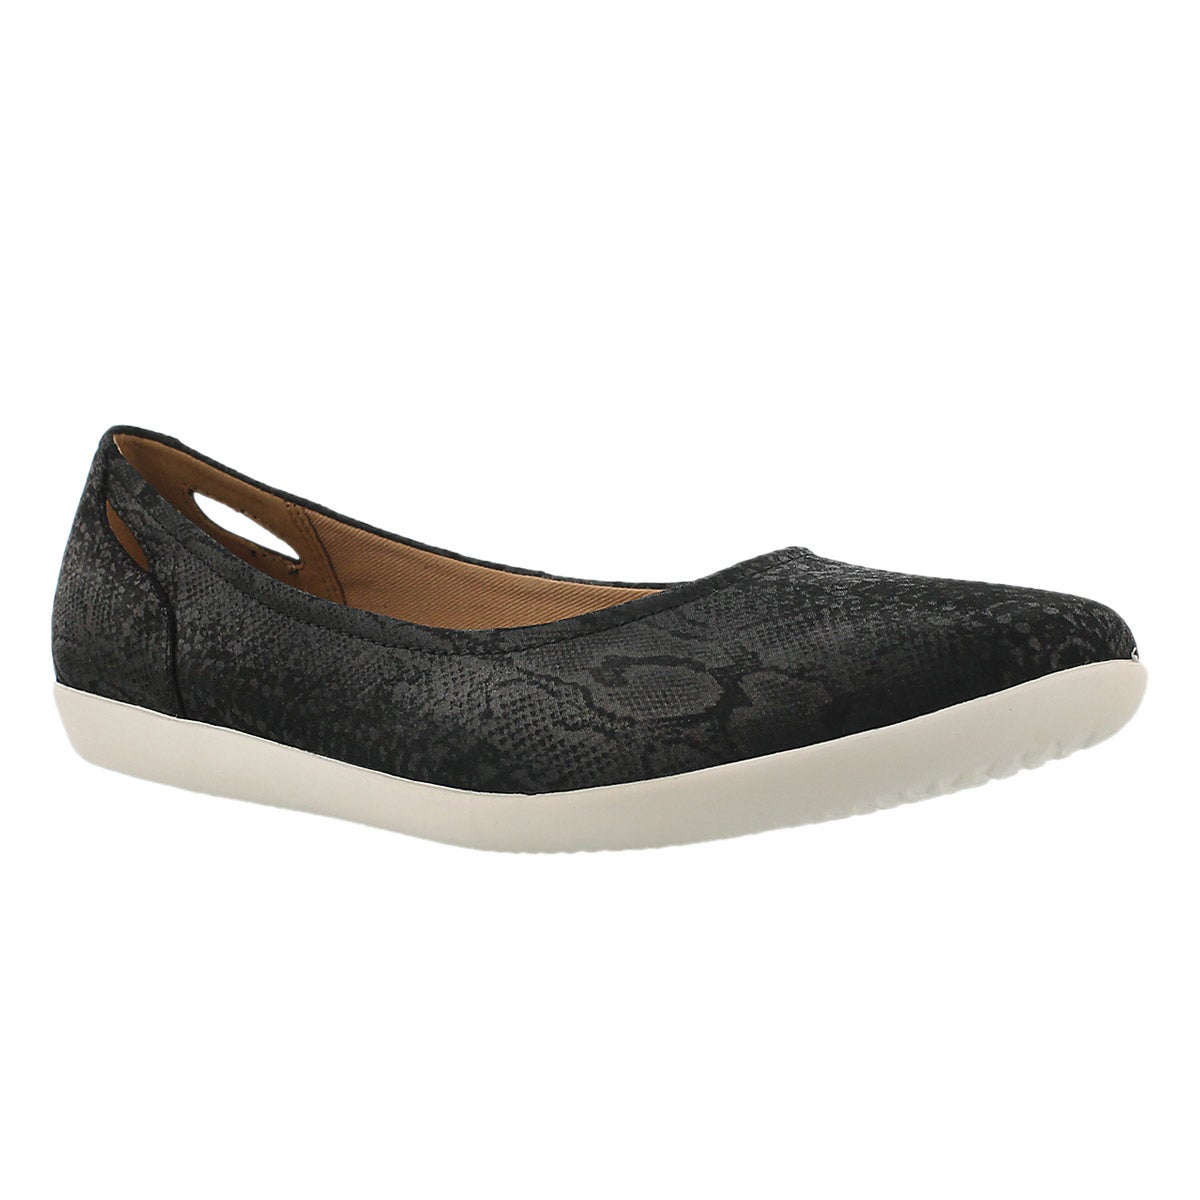 Women's HELINA ALESSIA black dress flats